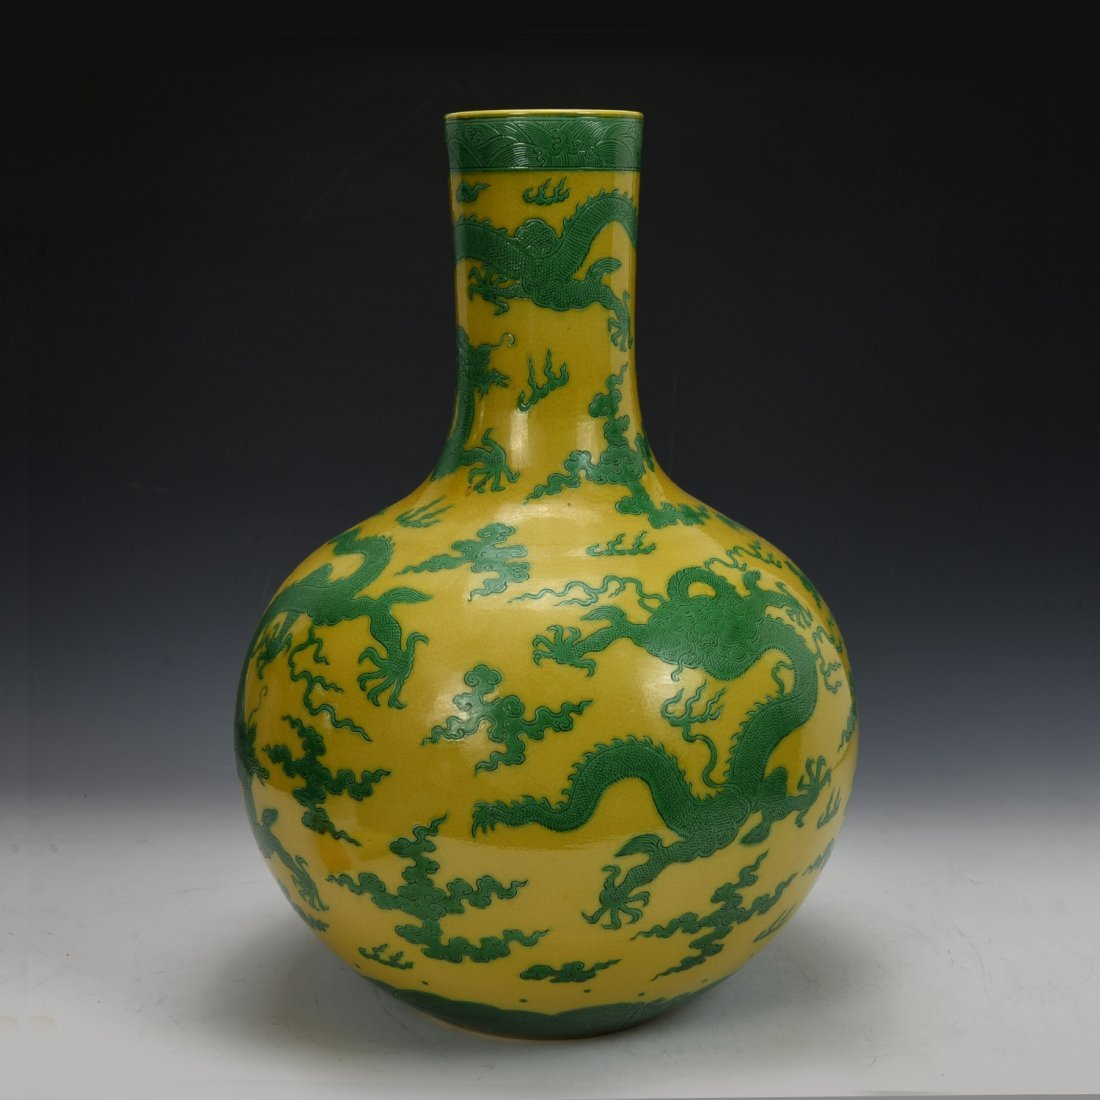 Chinese Antique Yellow and Green Bottle Vase